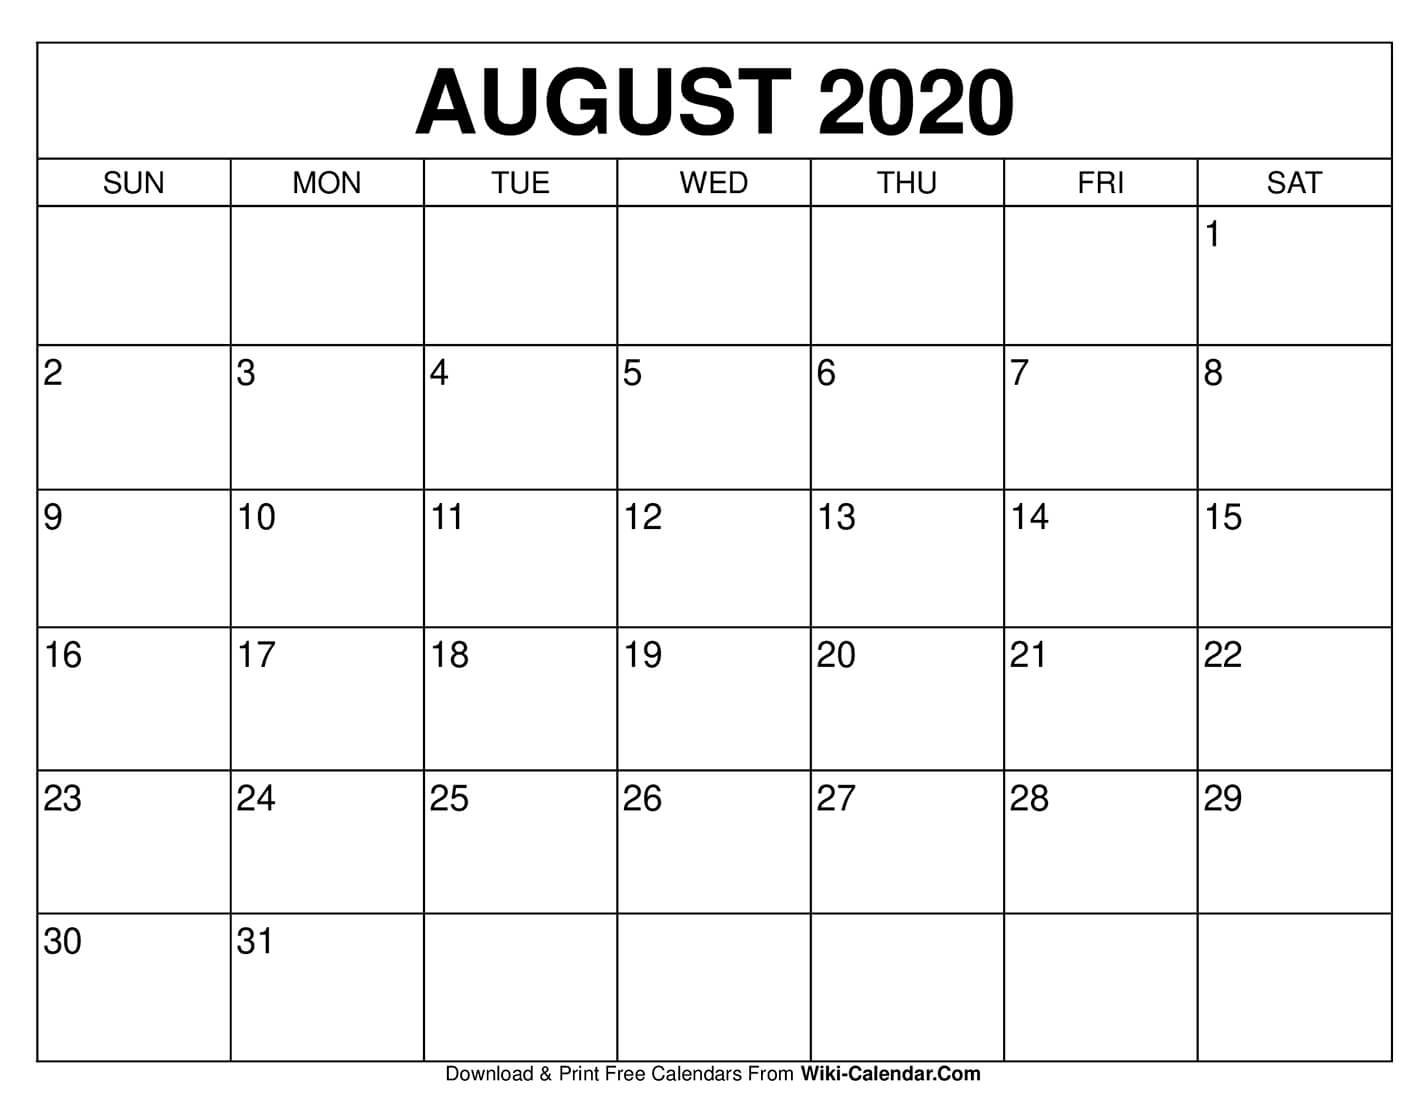 Free Printable August 2020 Calendars Free No Download Printable Calendars